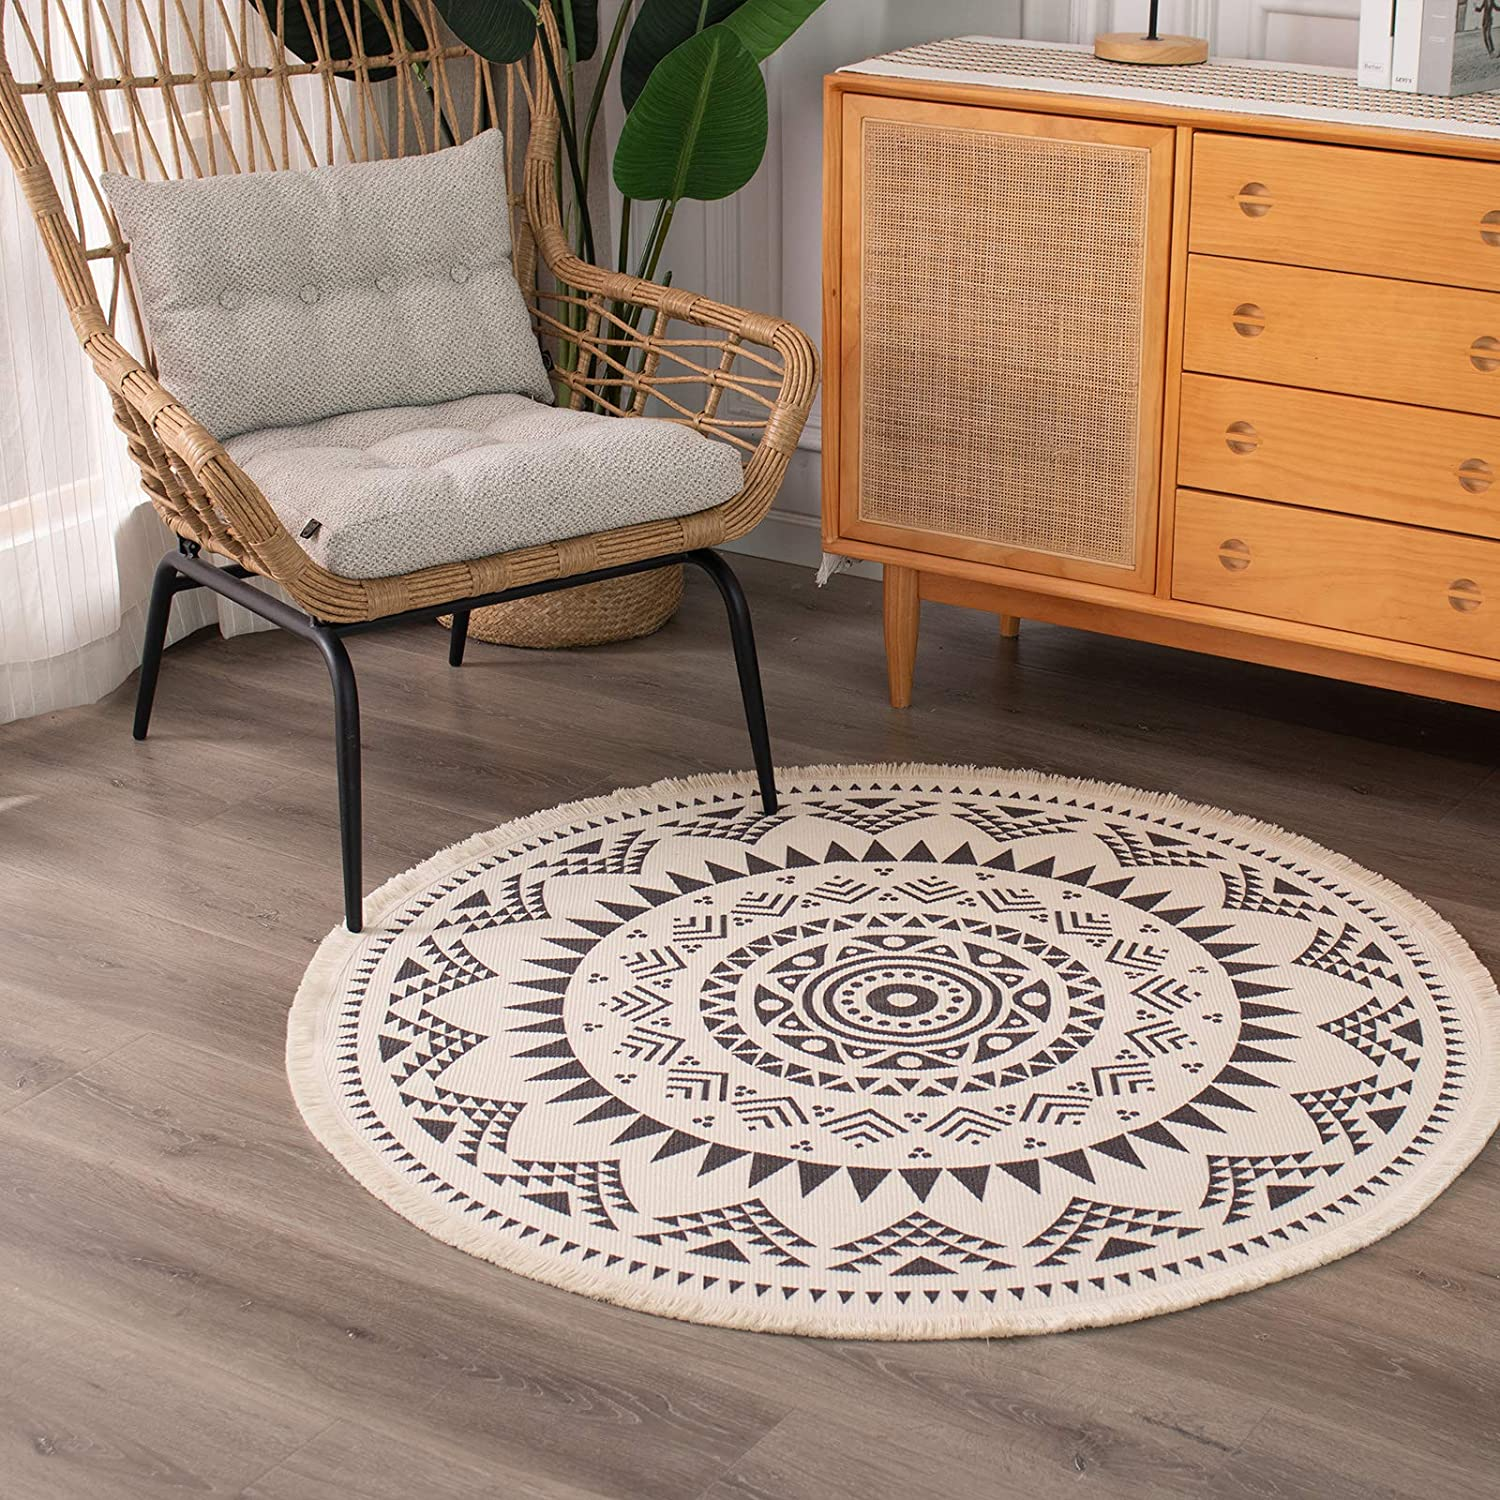 Amazon Com Boho Cotton Mandala Round Area Rug For Bedroom Living Room With Bohemian Floral Pattern Hand Woven Circle Carpet With Tassels Fringe Chic Indoor Floor Mat Machine Washable 4 Ft Kitchen